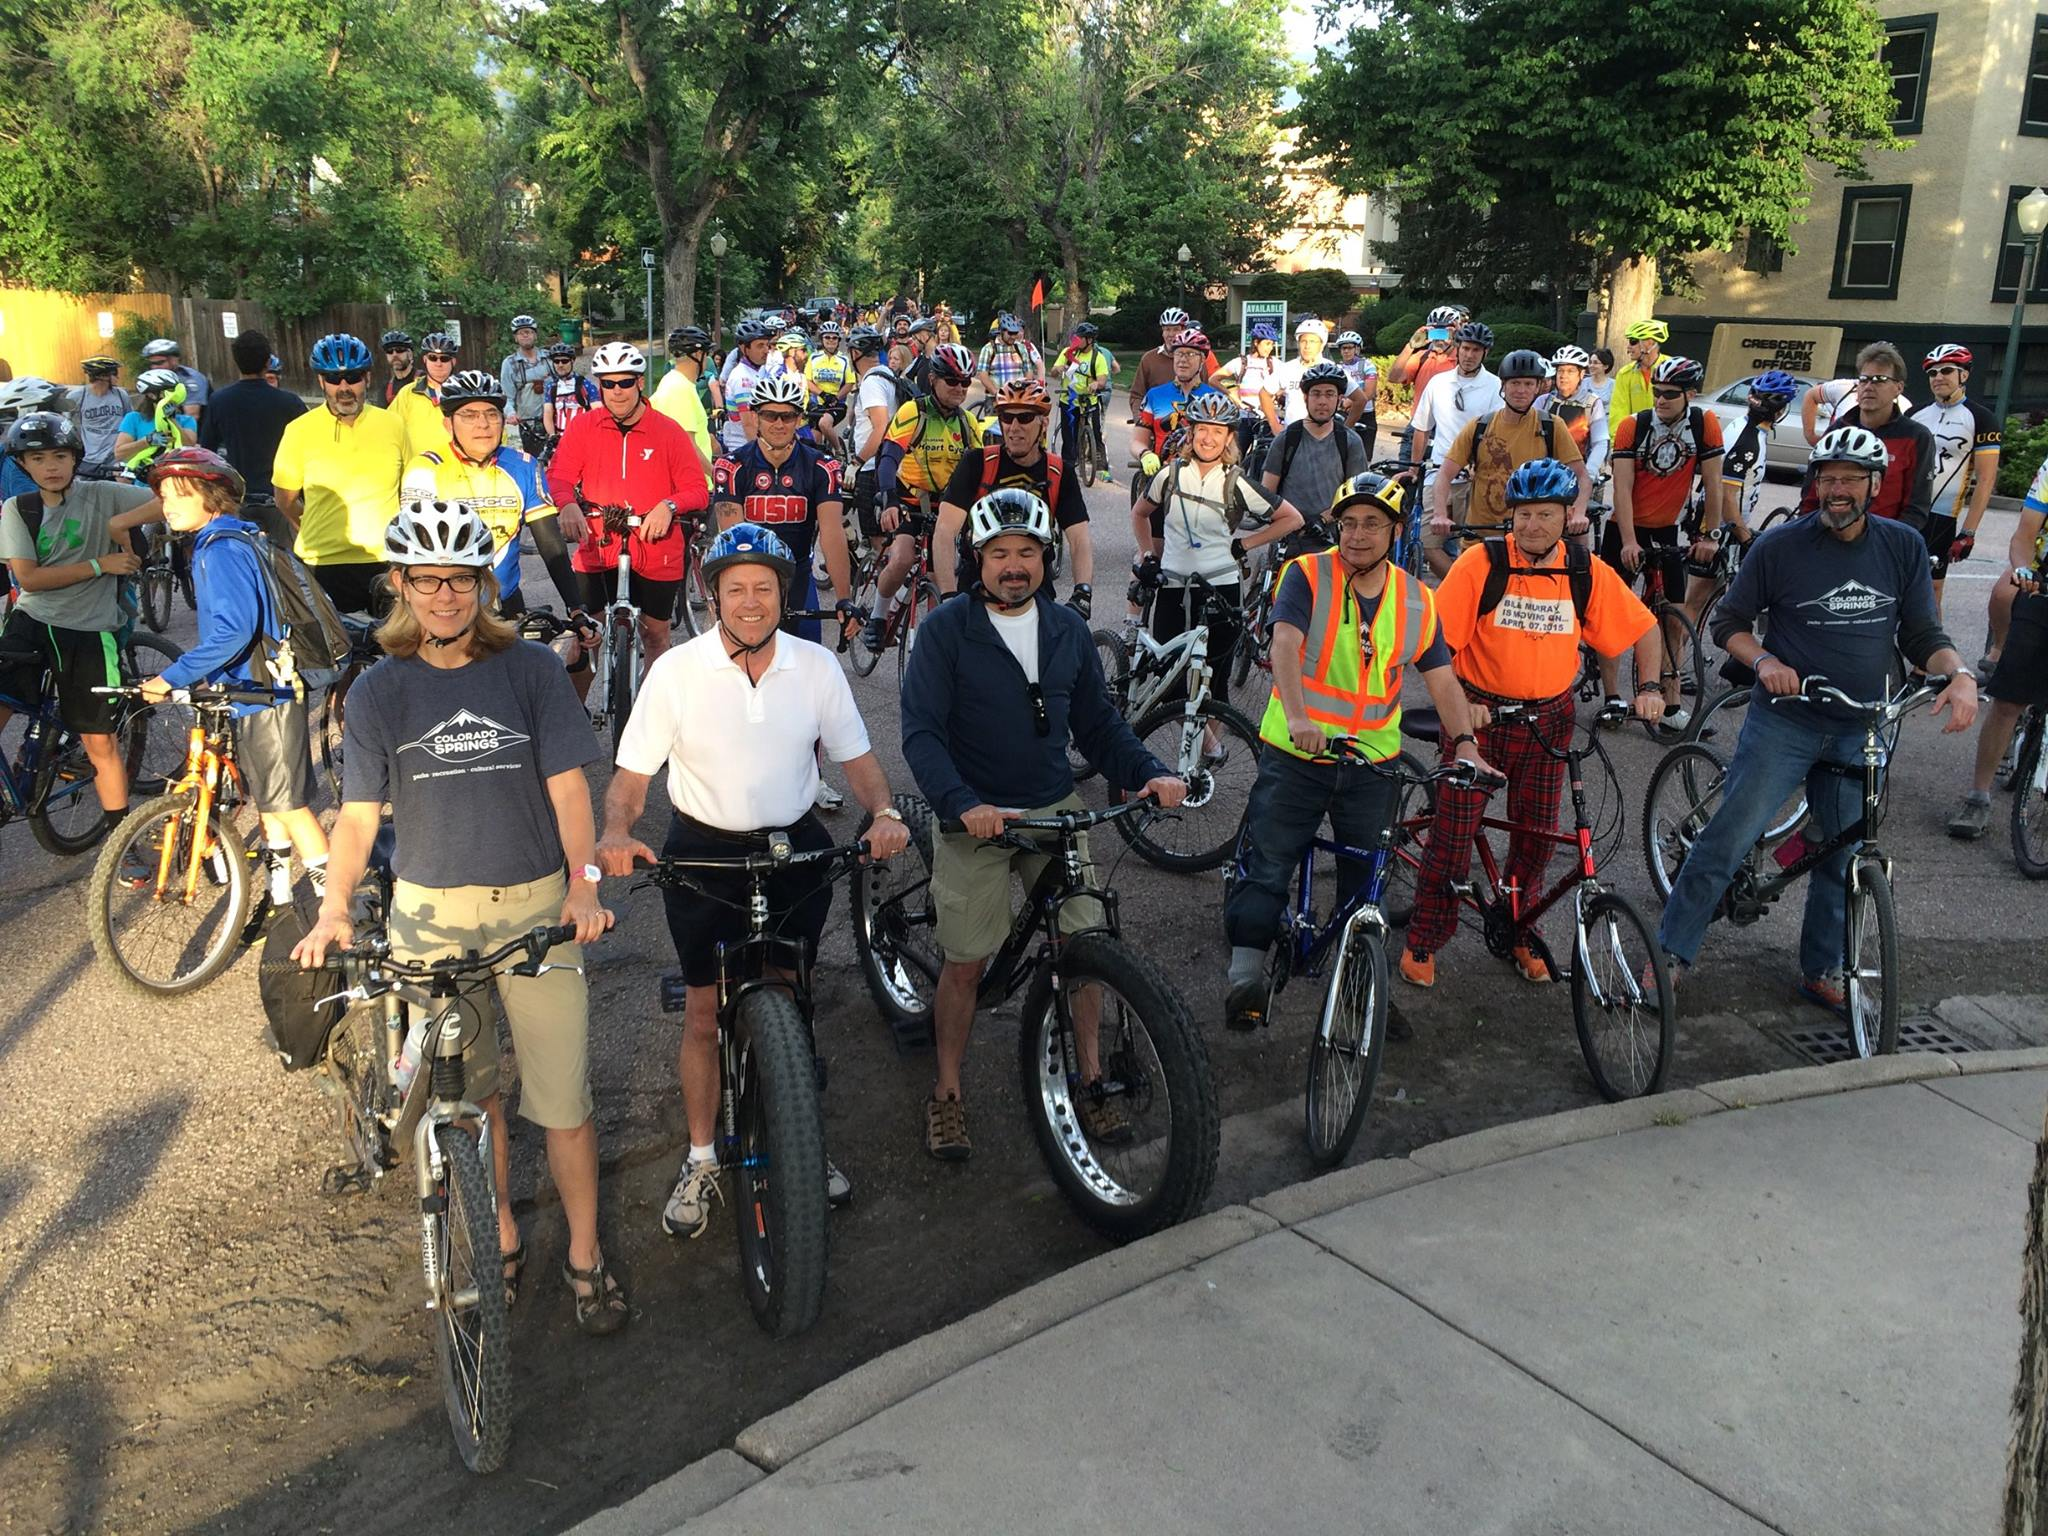 Last Year's Mayor's Bike Ride Which Included Several Council Members Including Jill Gaebler And Tom Strand.